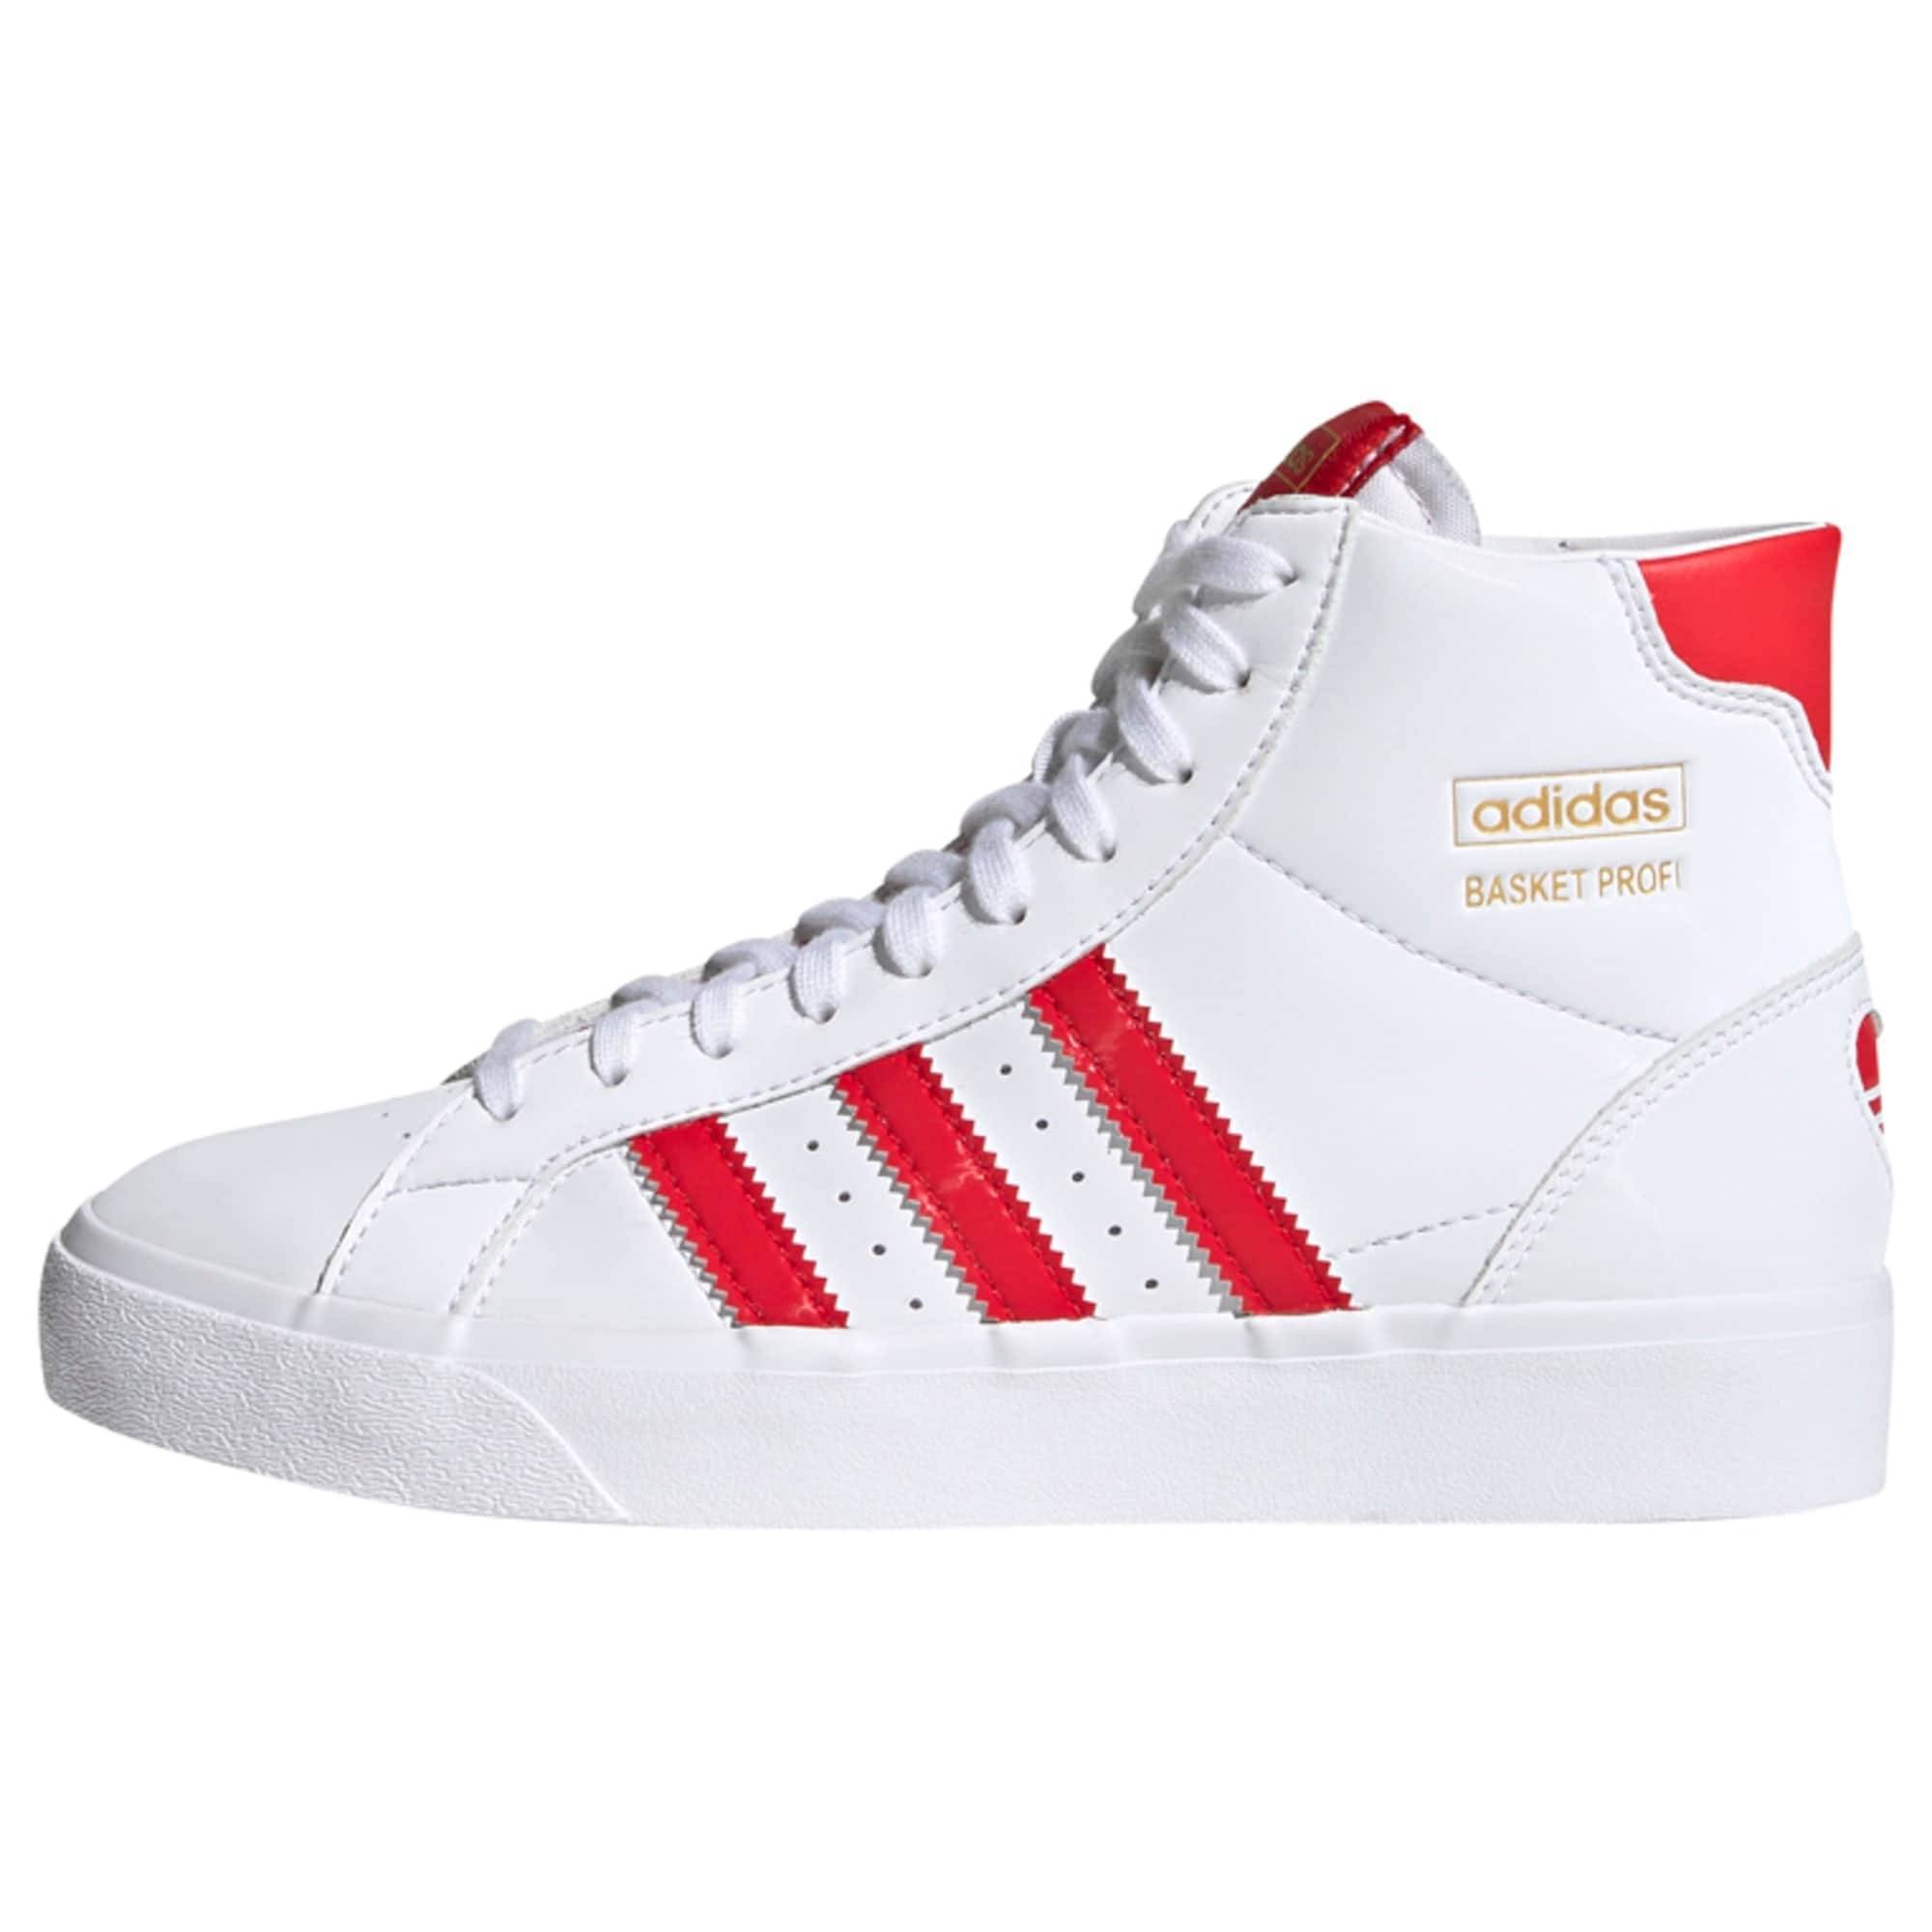 ADIDAS ORIGINALS Baskets  - Blanc - Taille: 5 - boy